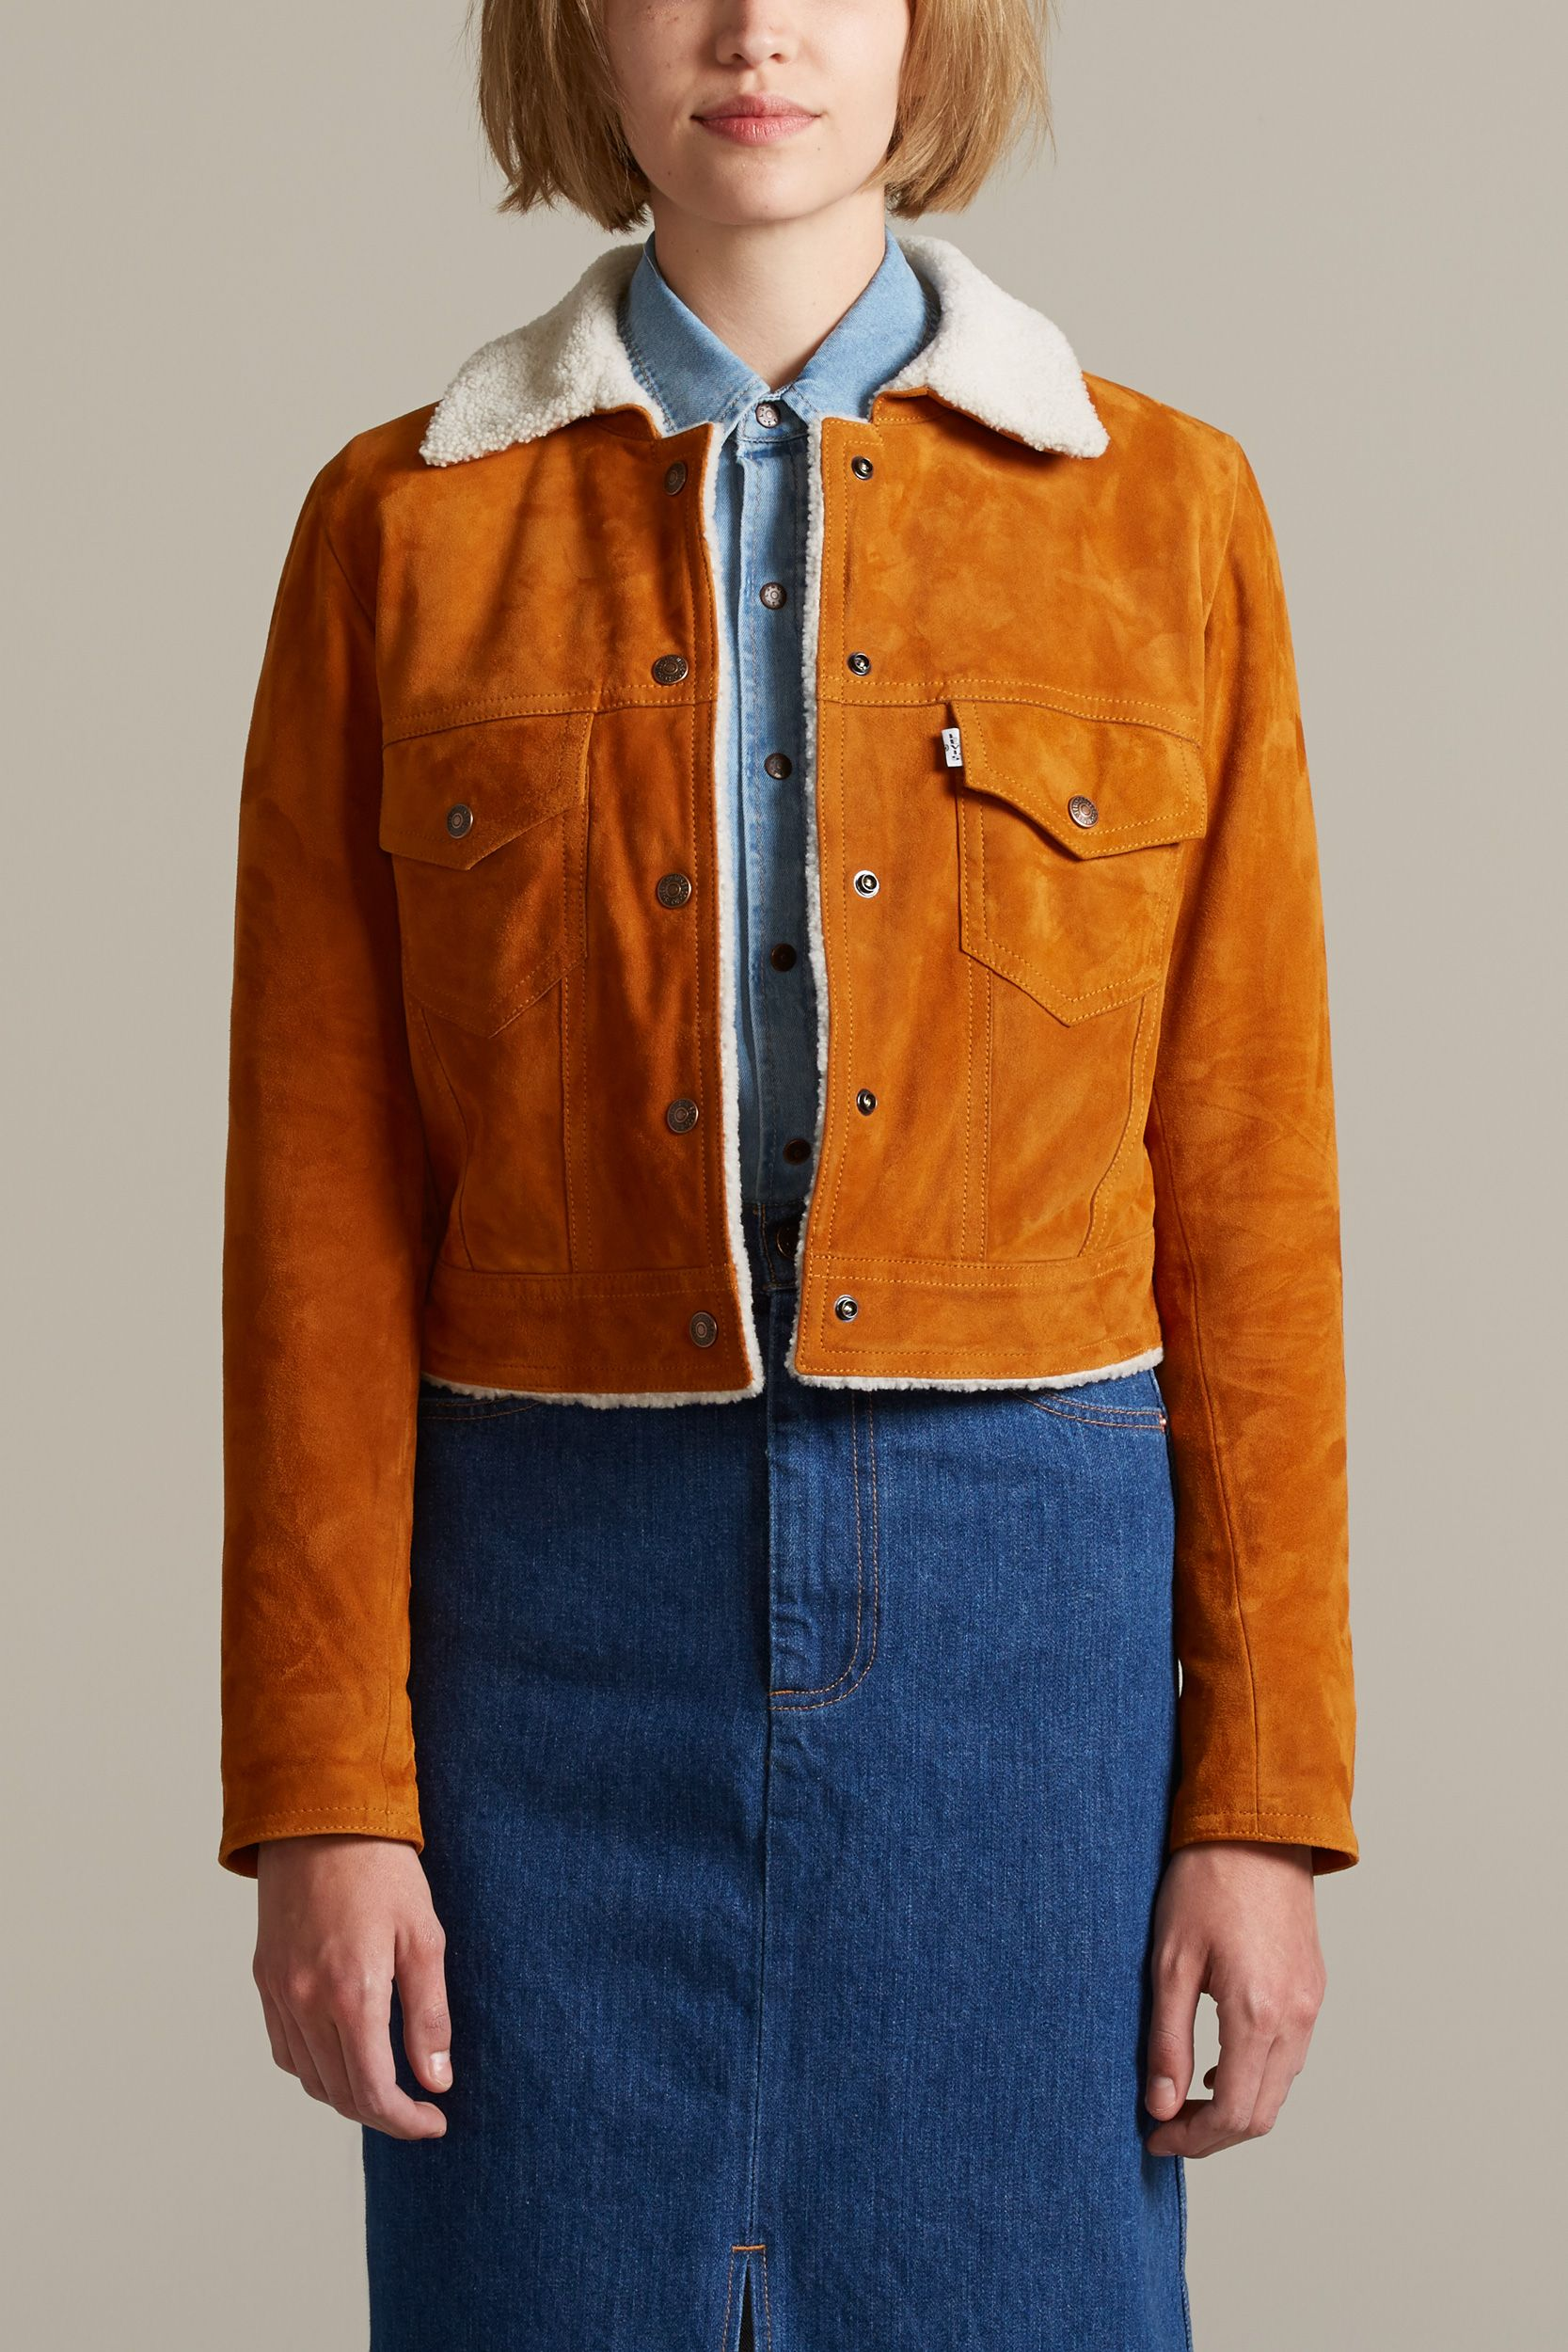 Sherpa Suede Clothing Levi's Vintage Jacket Style Western Rq0wqFC